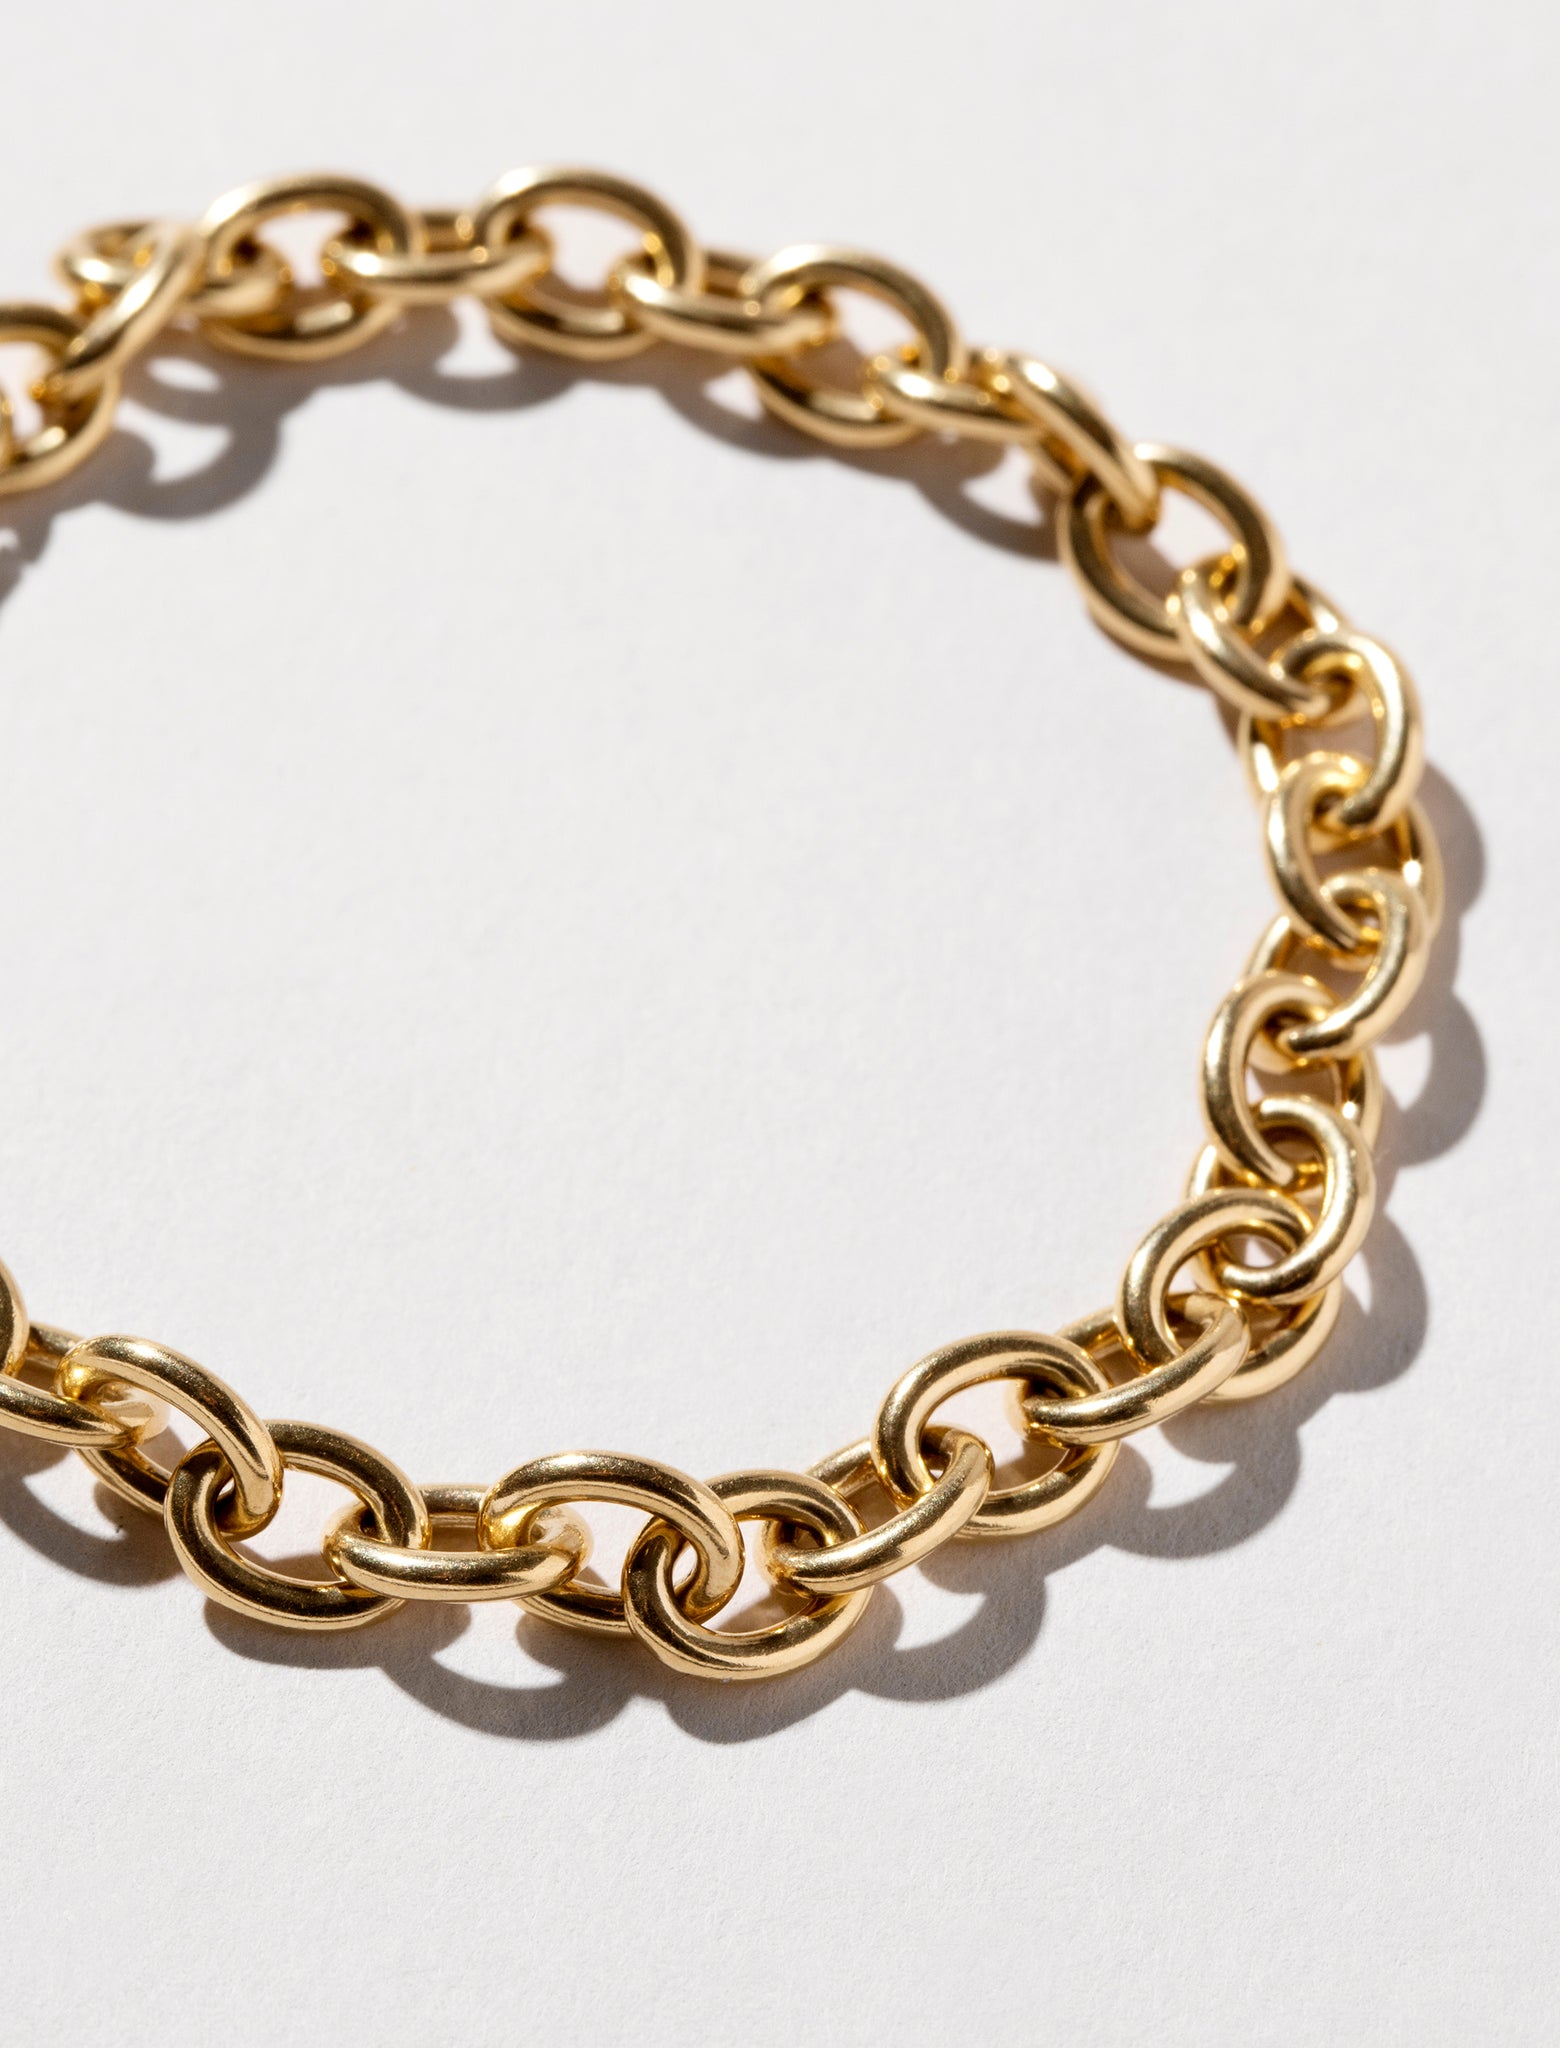 Detail photo of Round Box Chain Bracelet